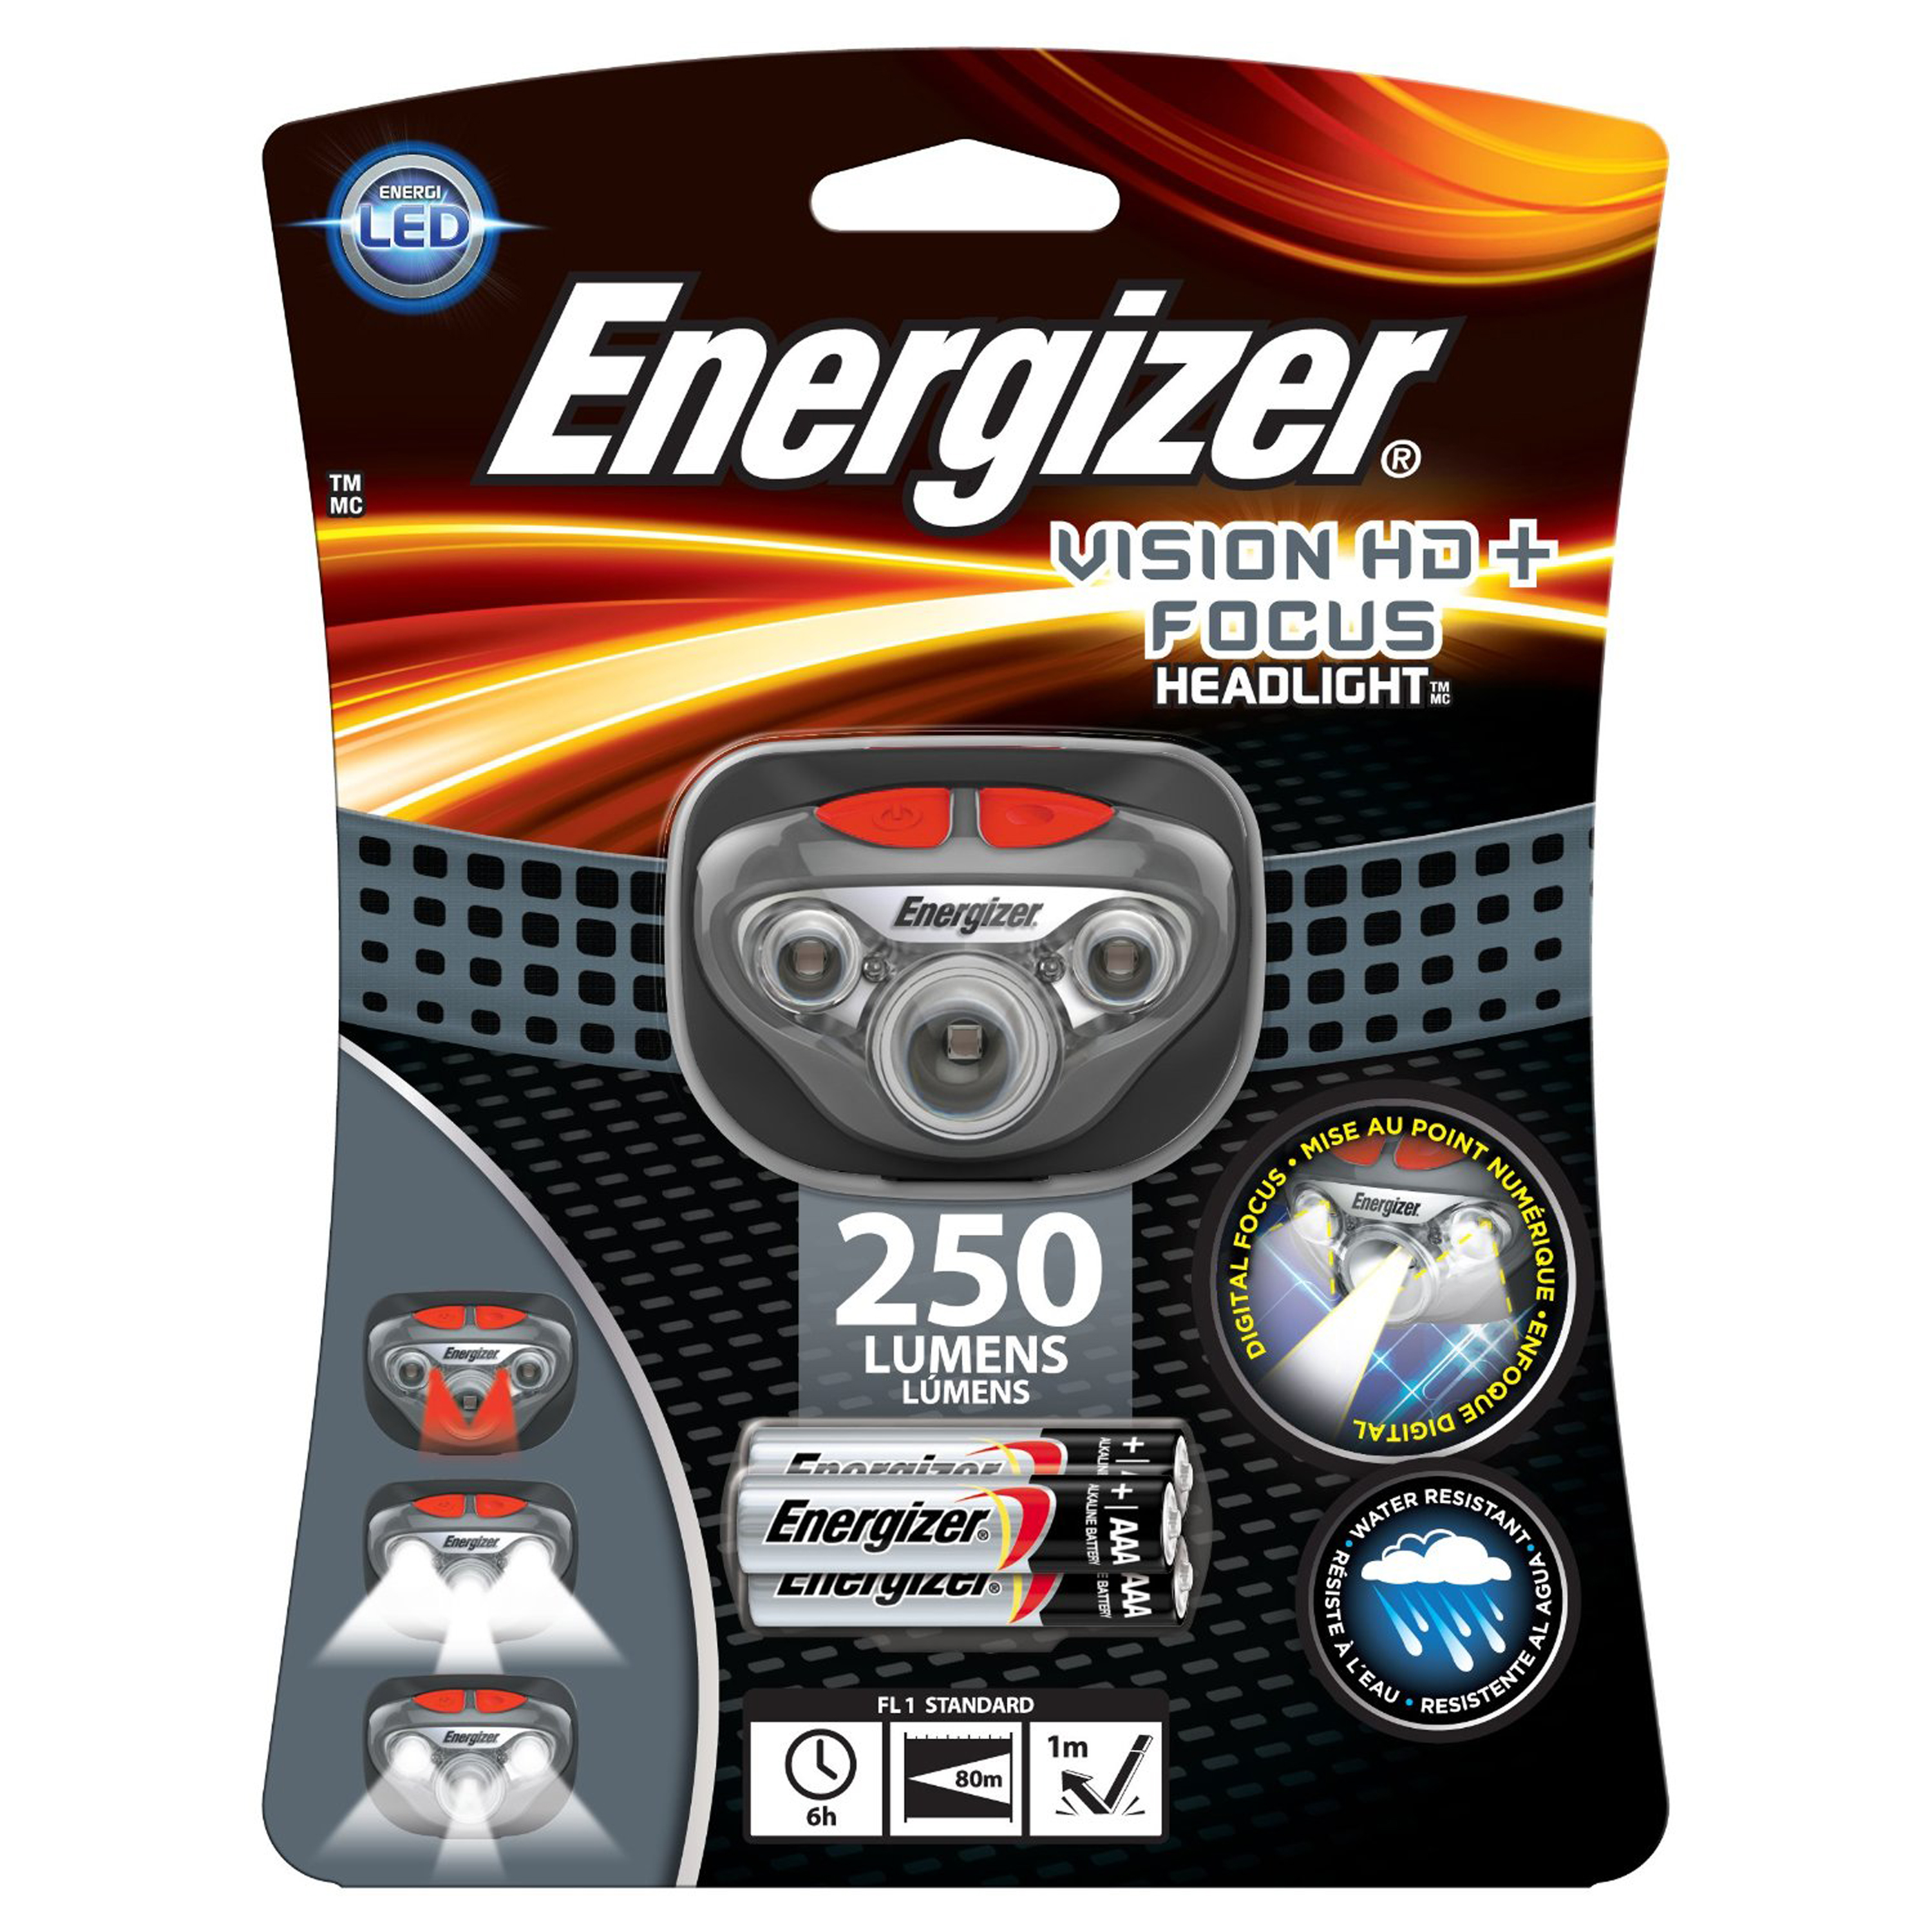 Energizer Vision Headlamp HD+ Focus LED, 250 Lumens